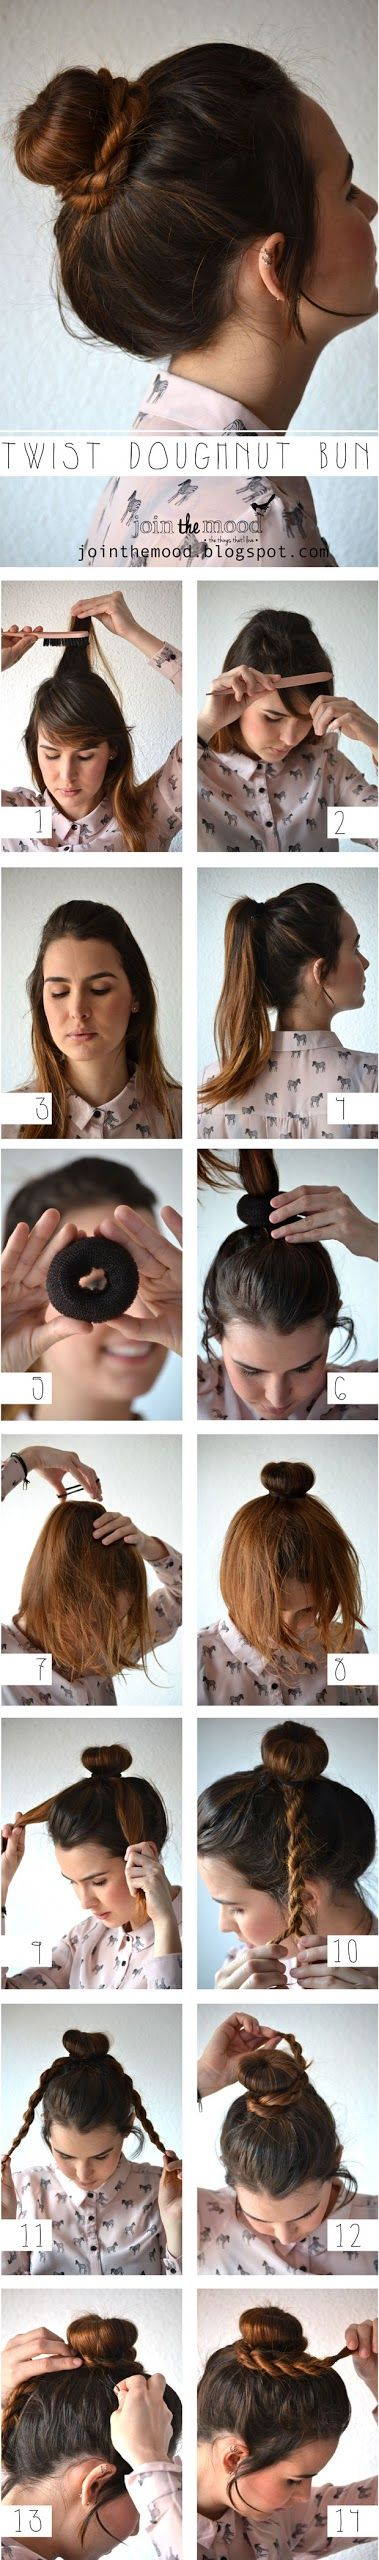 Outstanding 1000 Ideas About Easy Bun Hairstyles On Pinterest Easy Bun Bun Short Hairstyles Gunalazisus